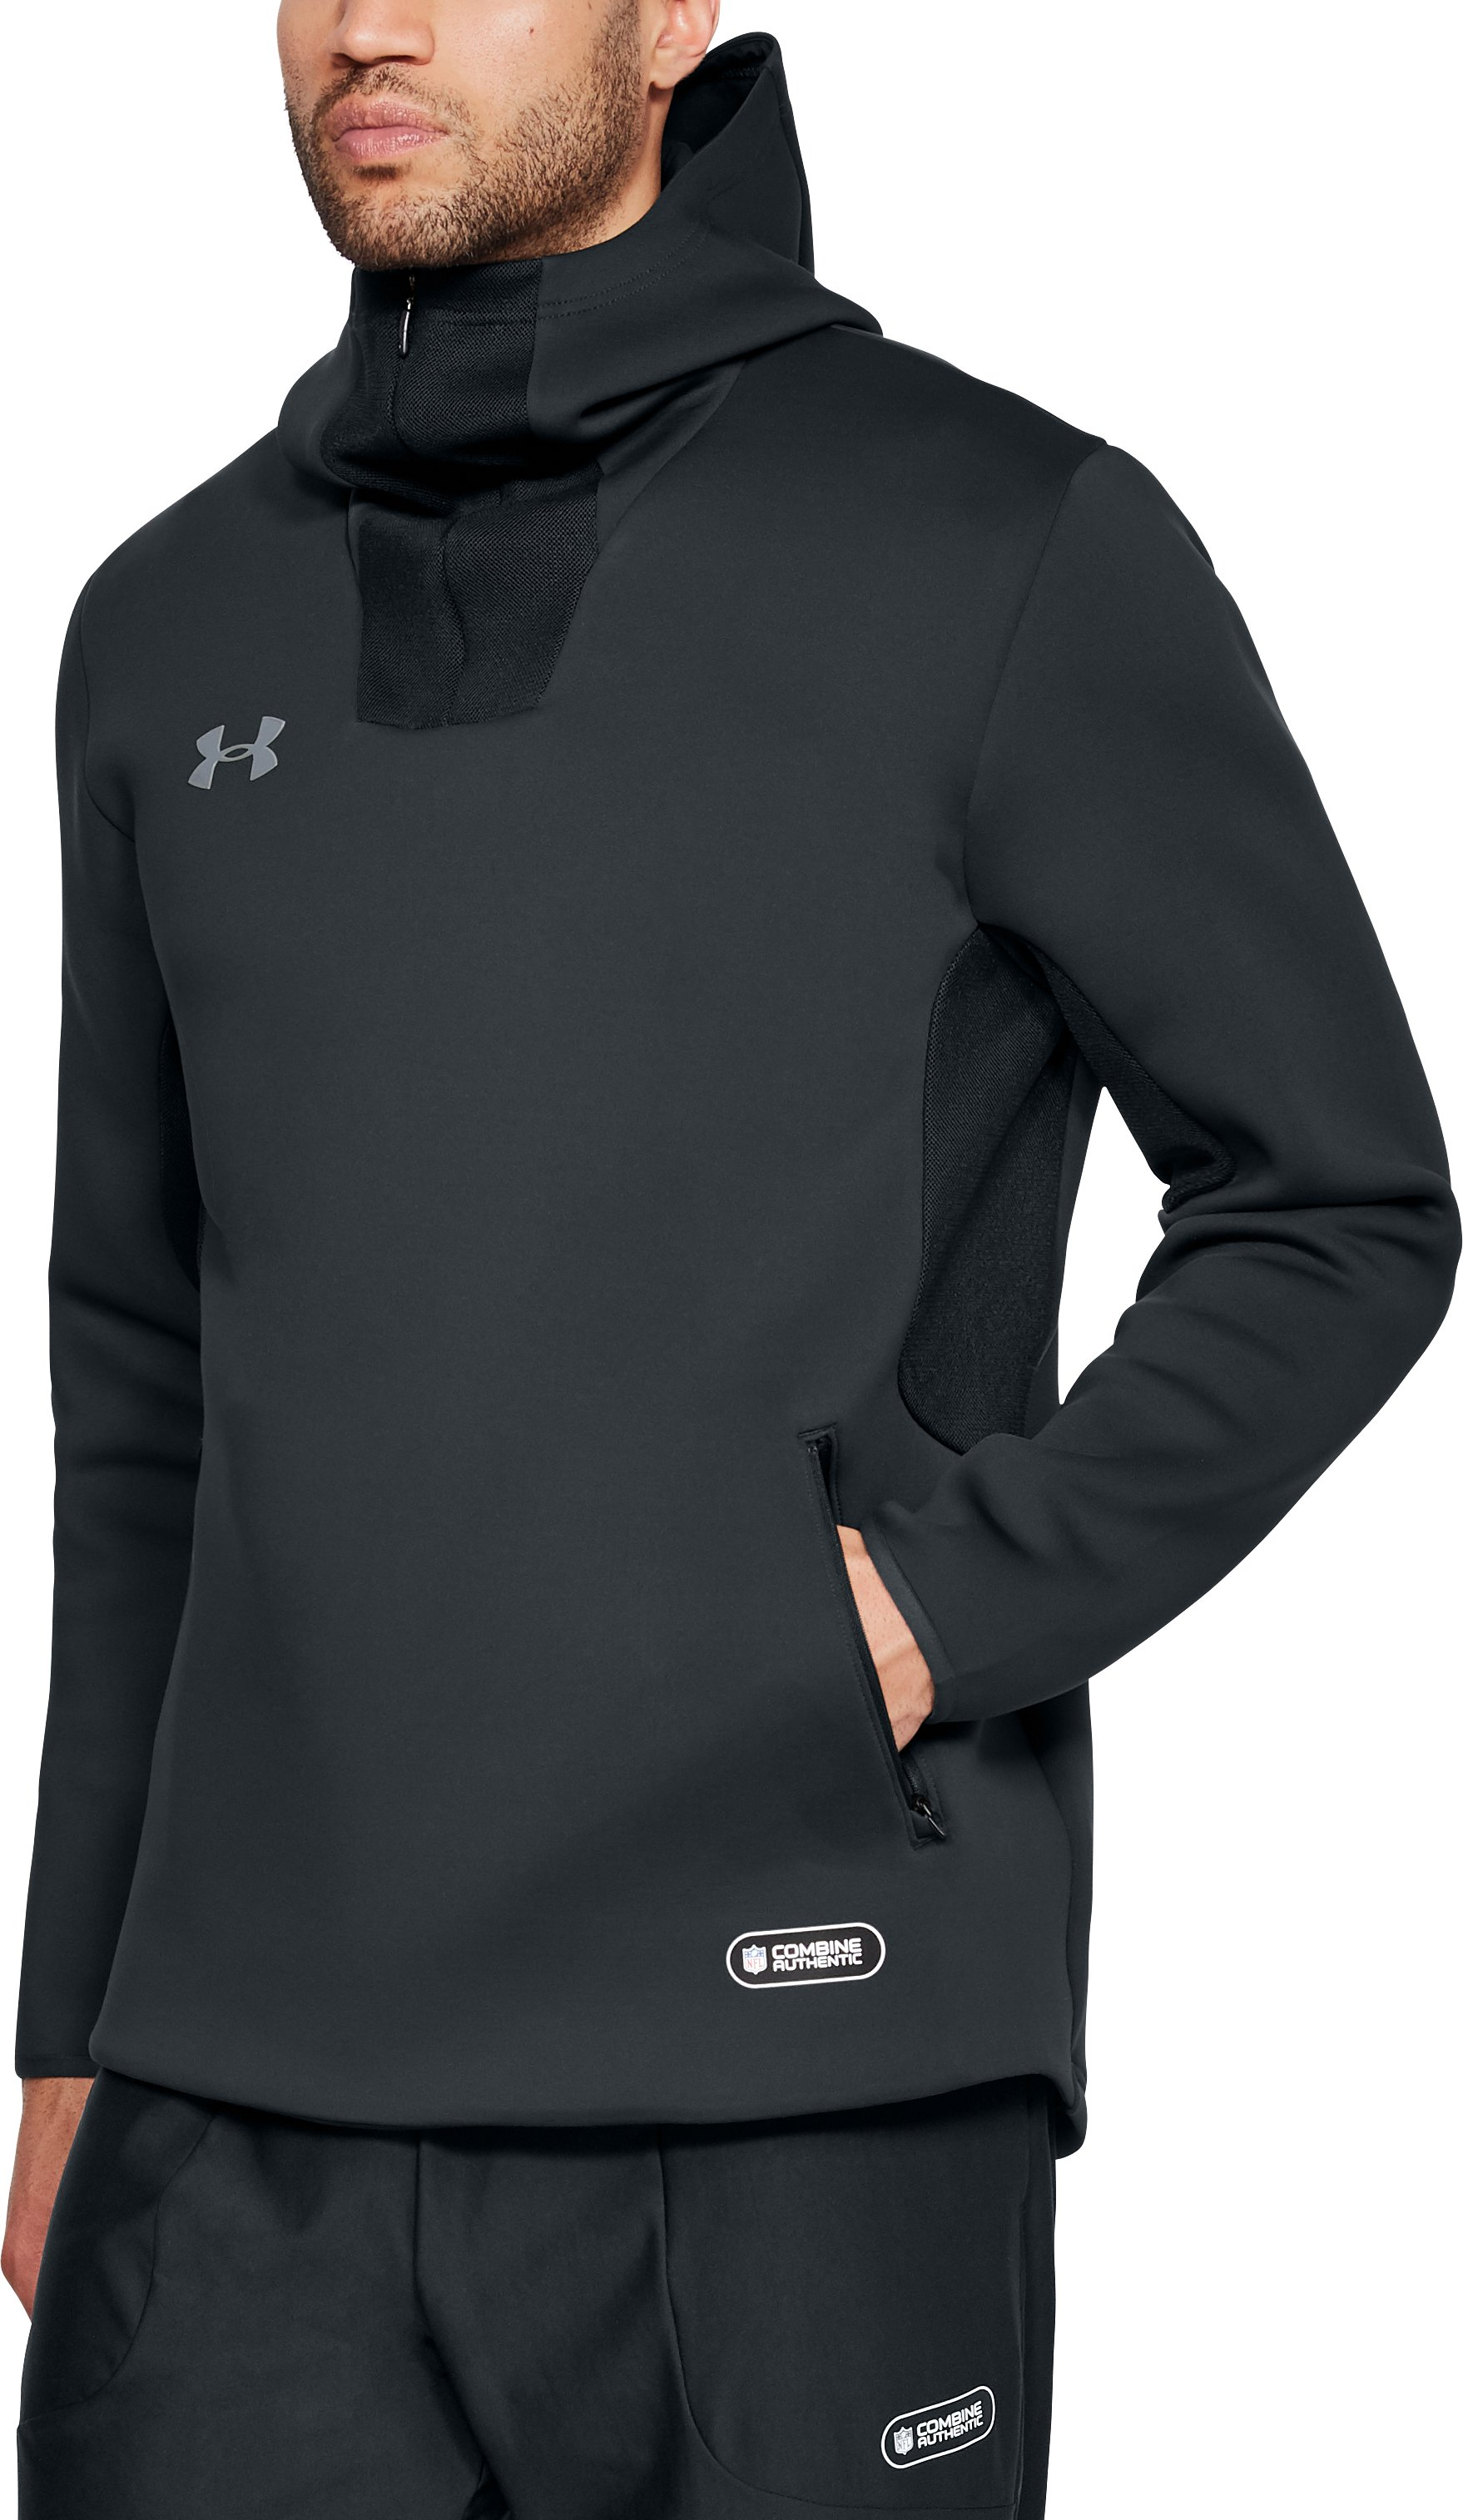 Men's NFL Combine Authentic Event Hoodie, ANTHRACITE